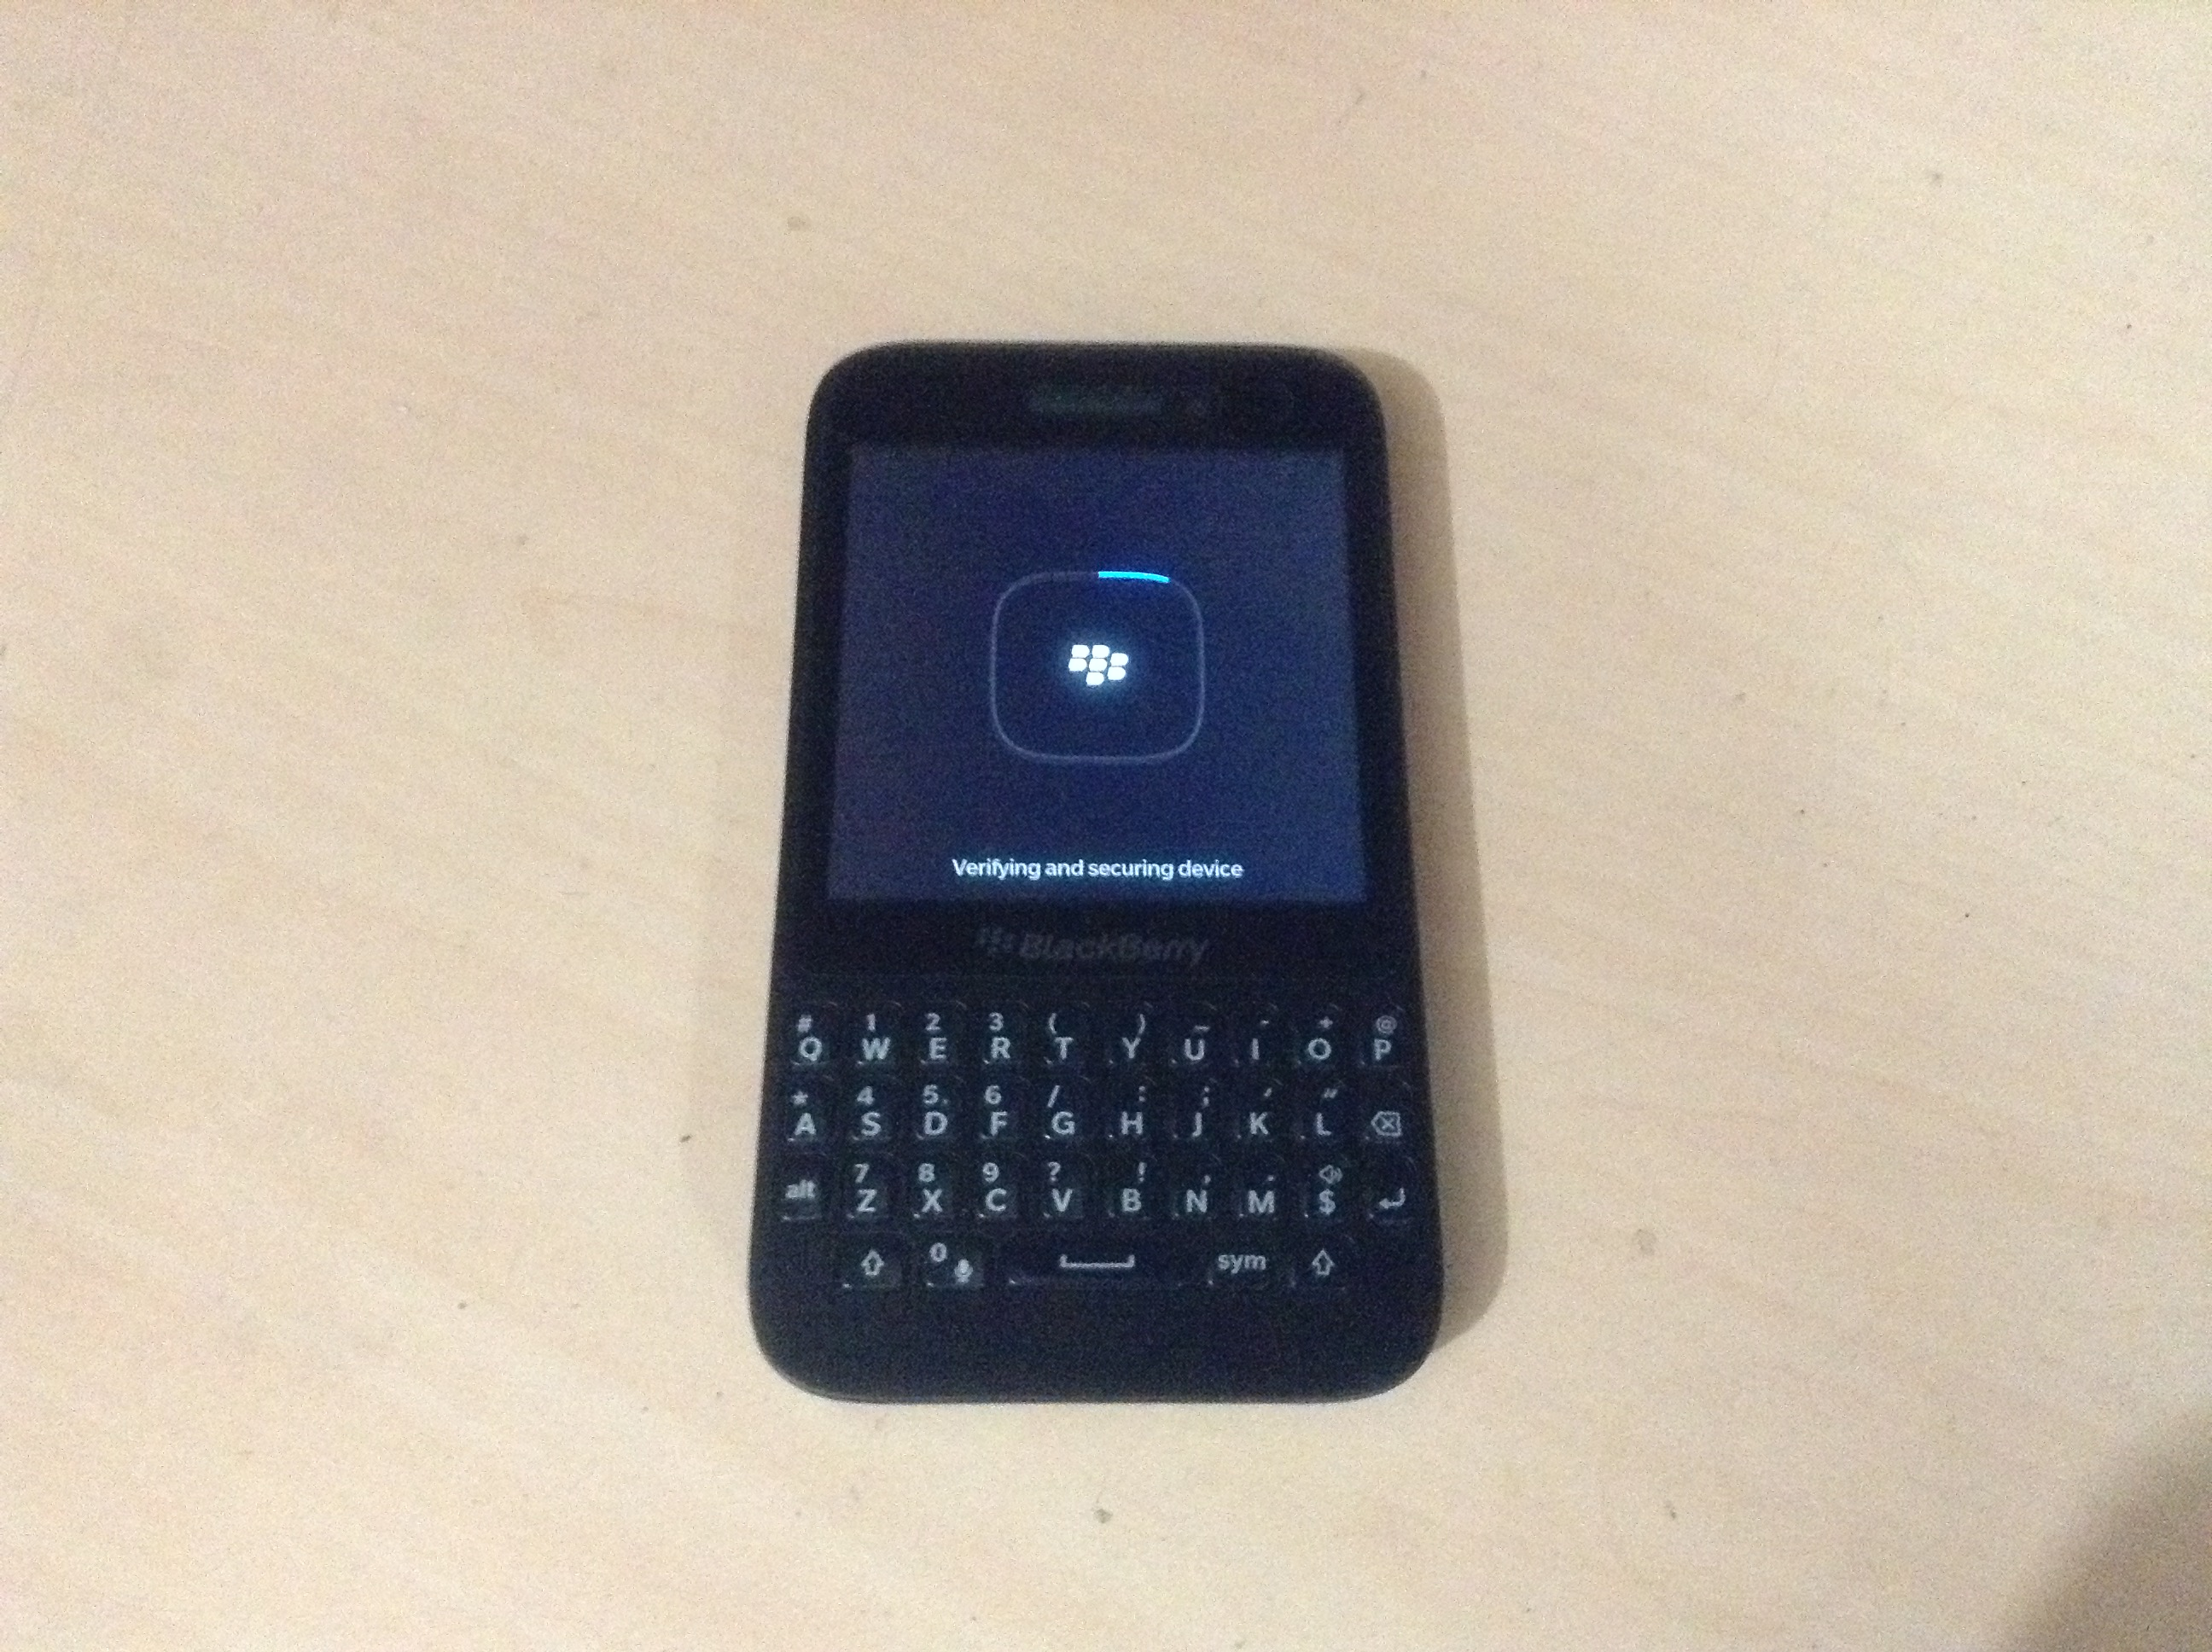 File:BlackBerry Q5 jpg - Wikimedia Commons